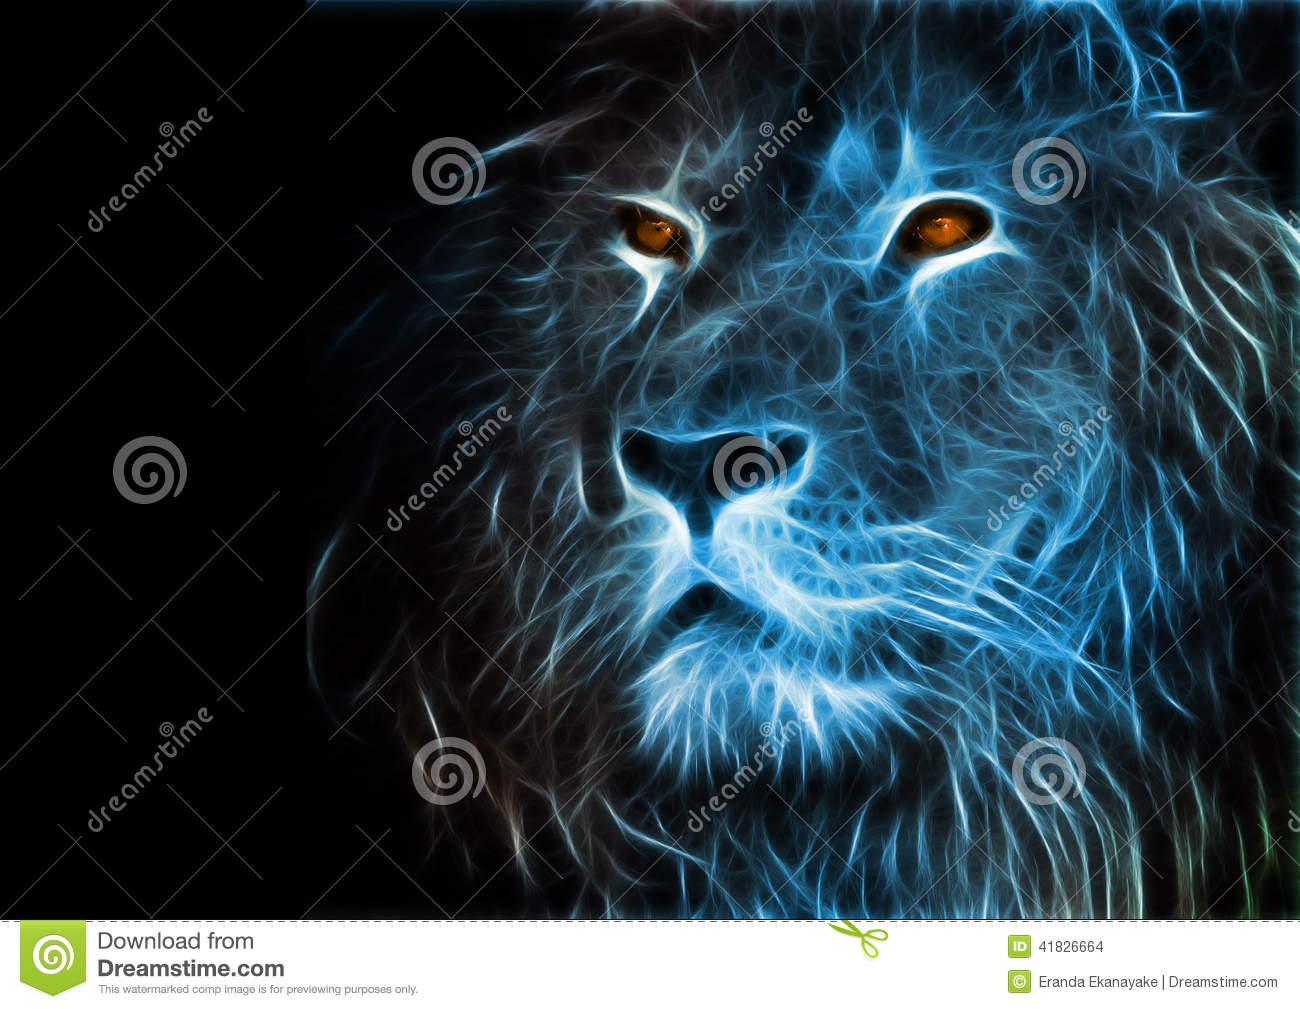 Fantasy lion - photo#28